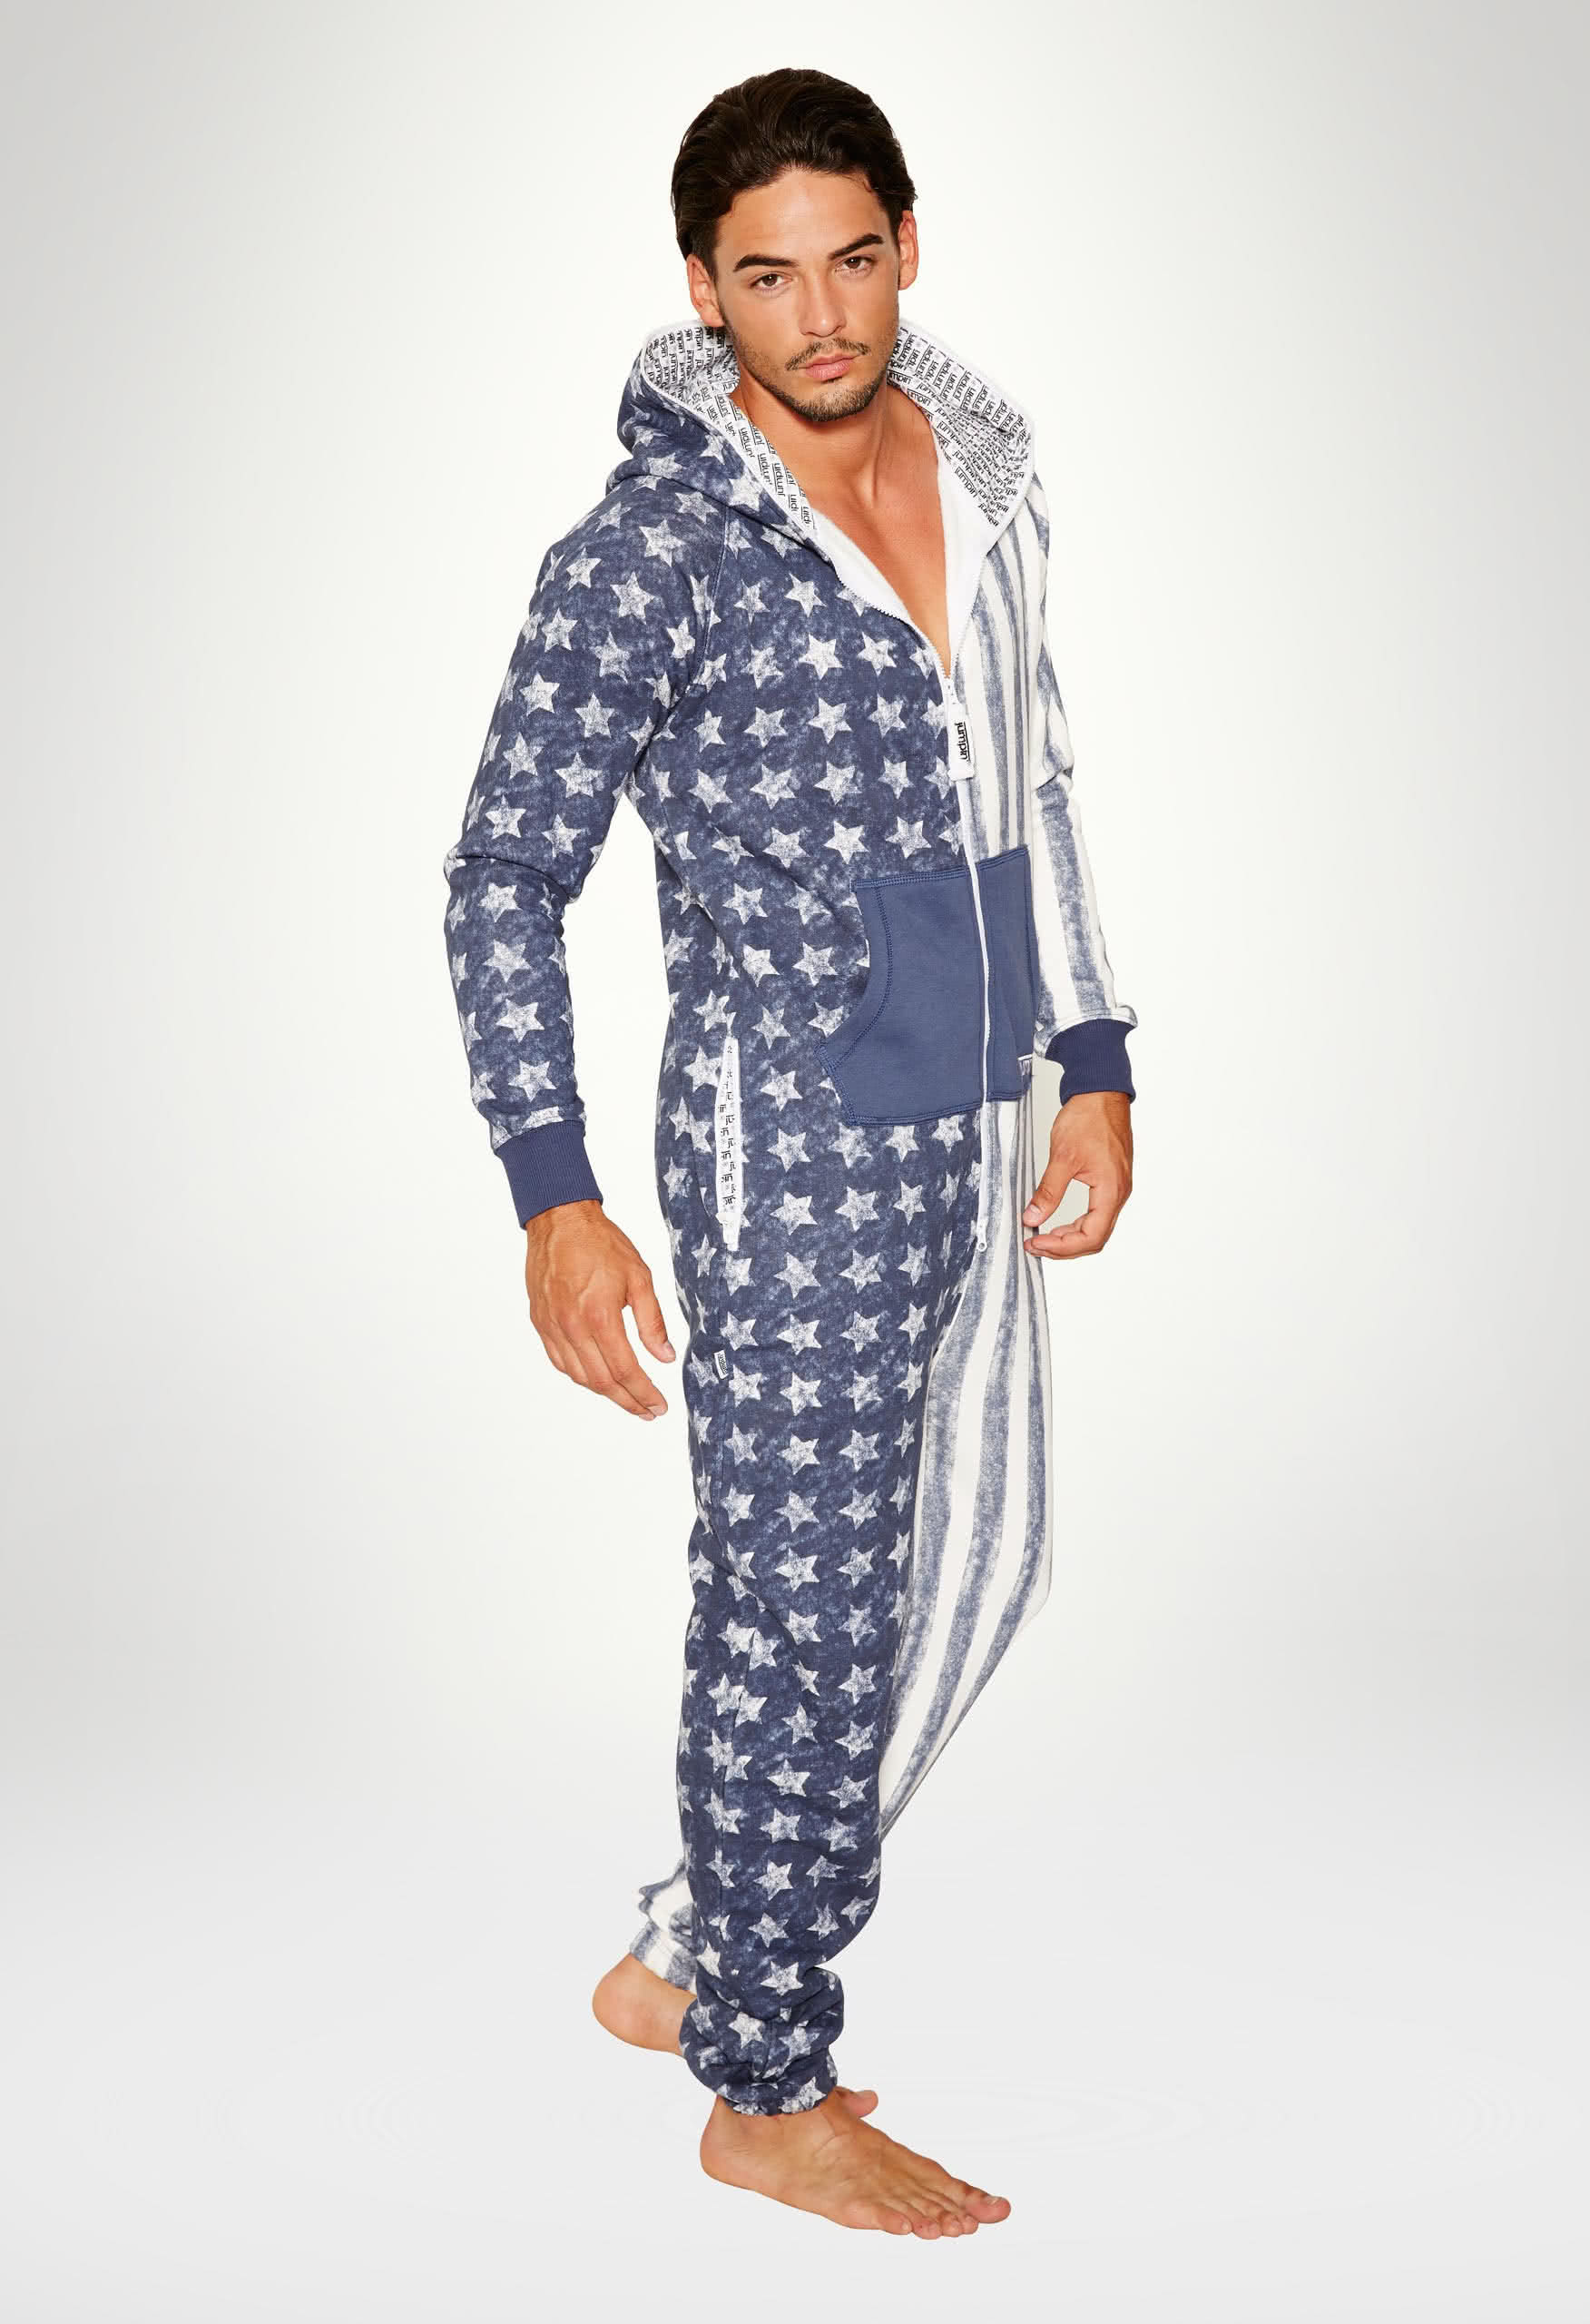 Jumpsuit Original X-MAS Edition - Herren